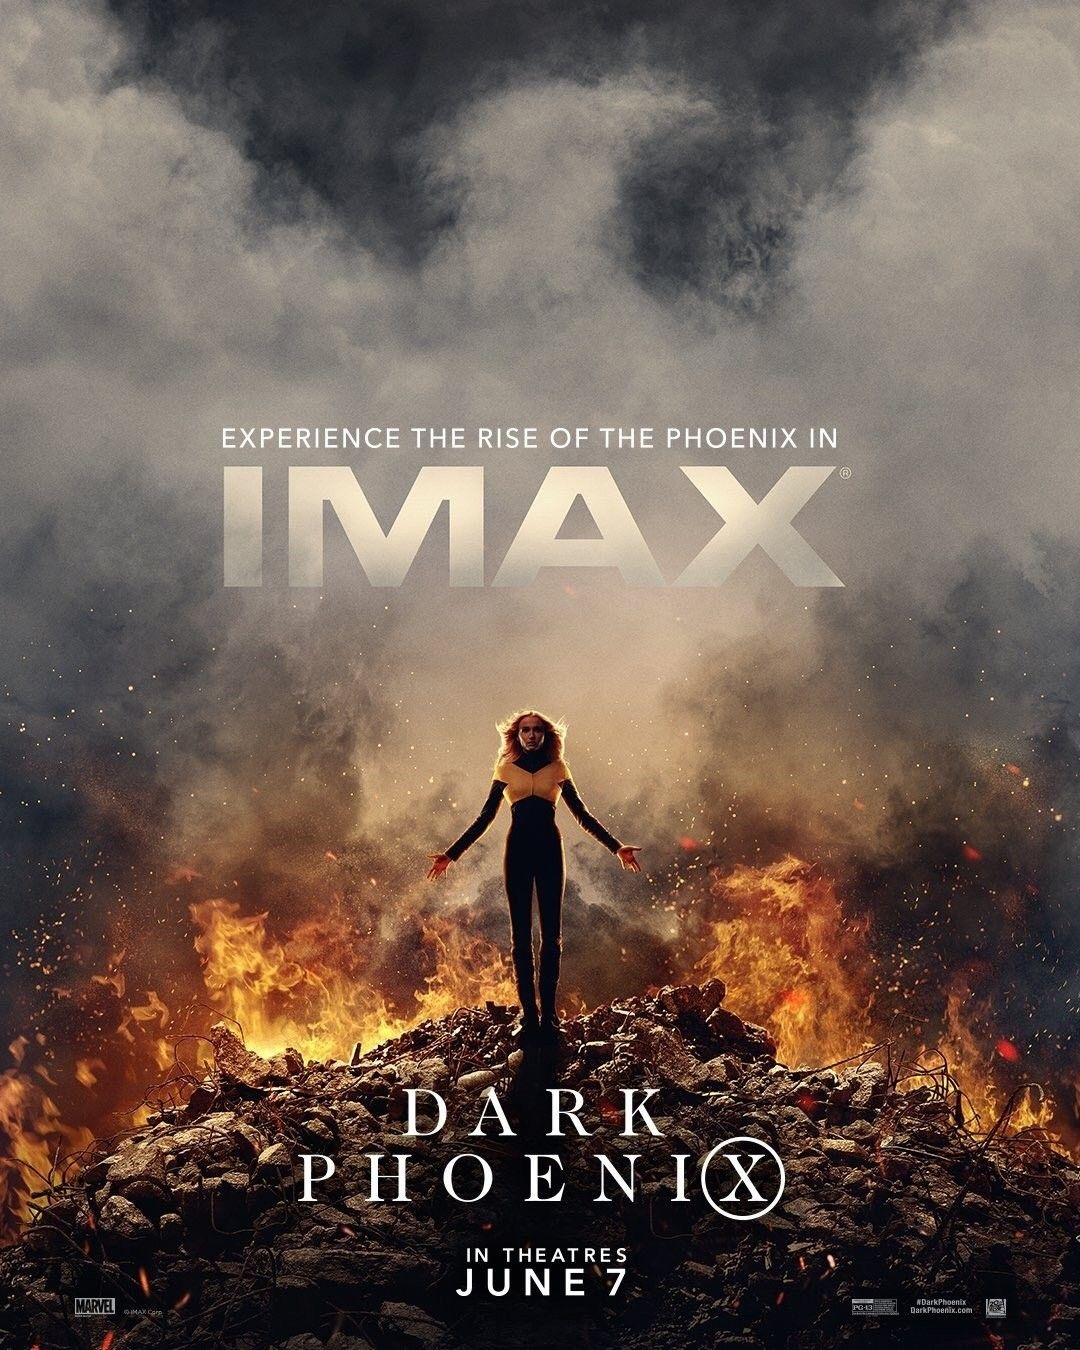 Dark Phoenix Imax Poster Dark Phoenix Imax New Movie Posters